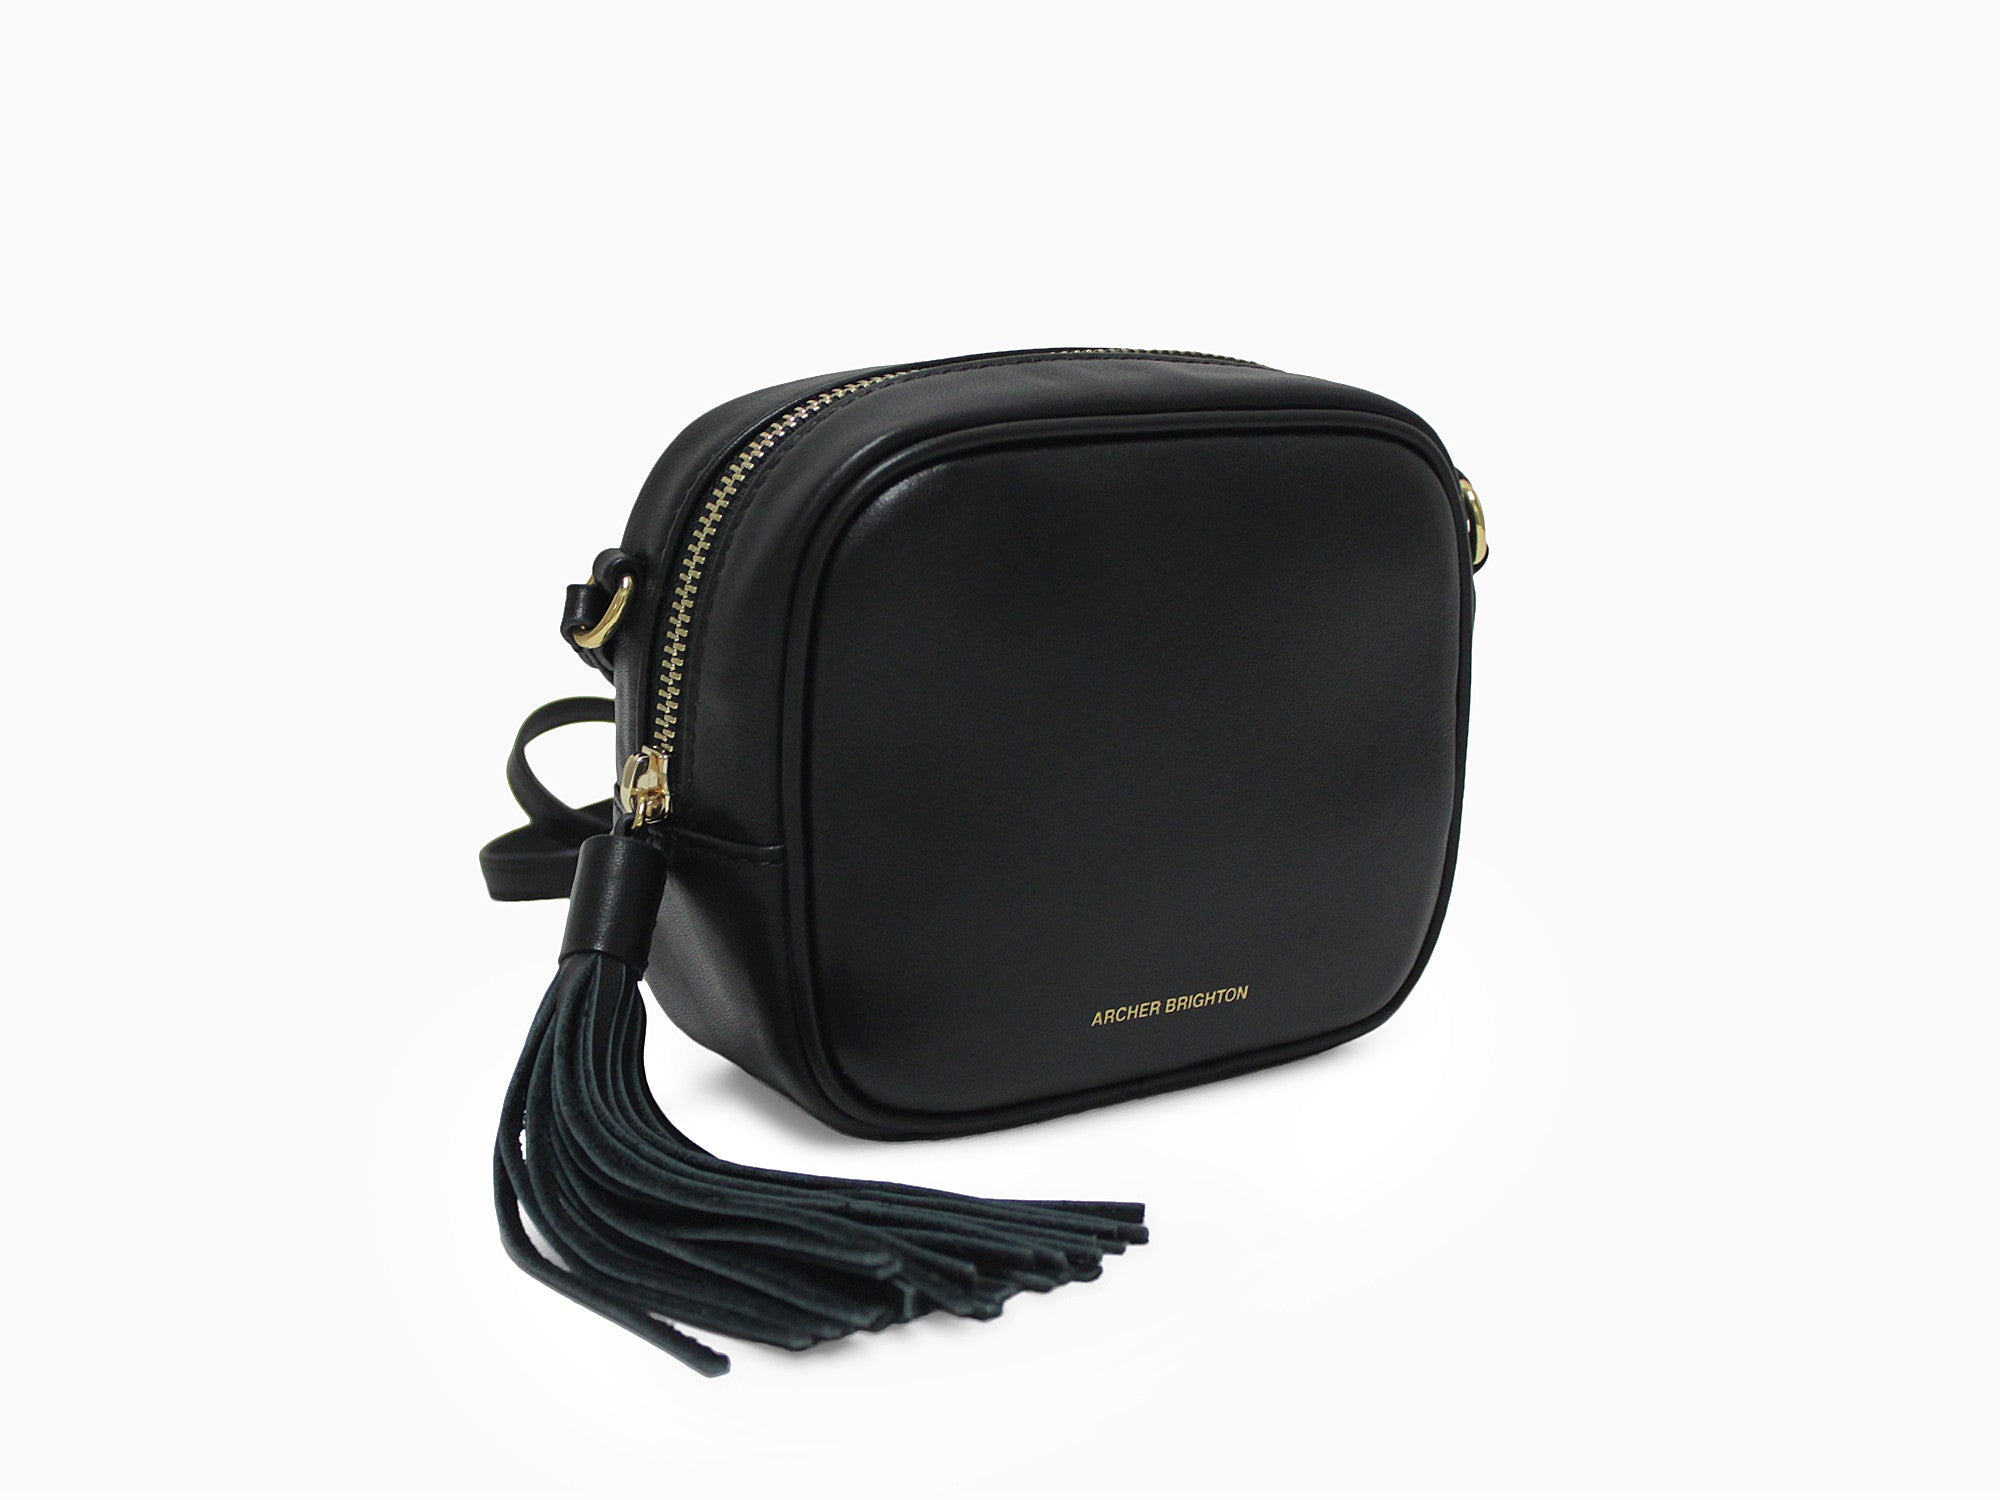 THE EMMA LEATHER EVENING BAG